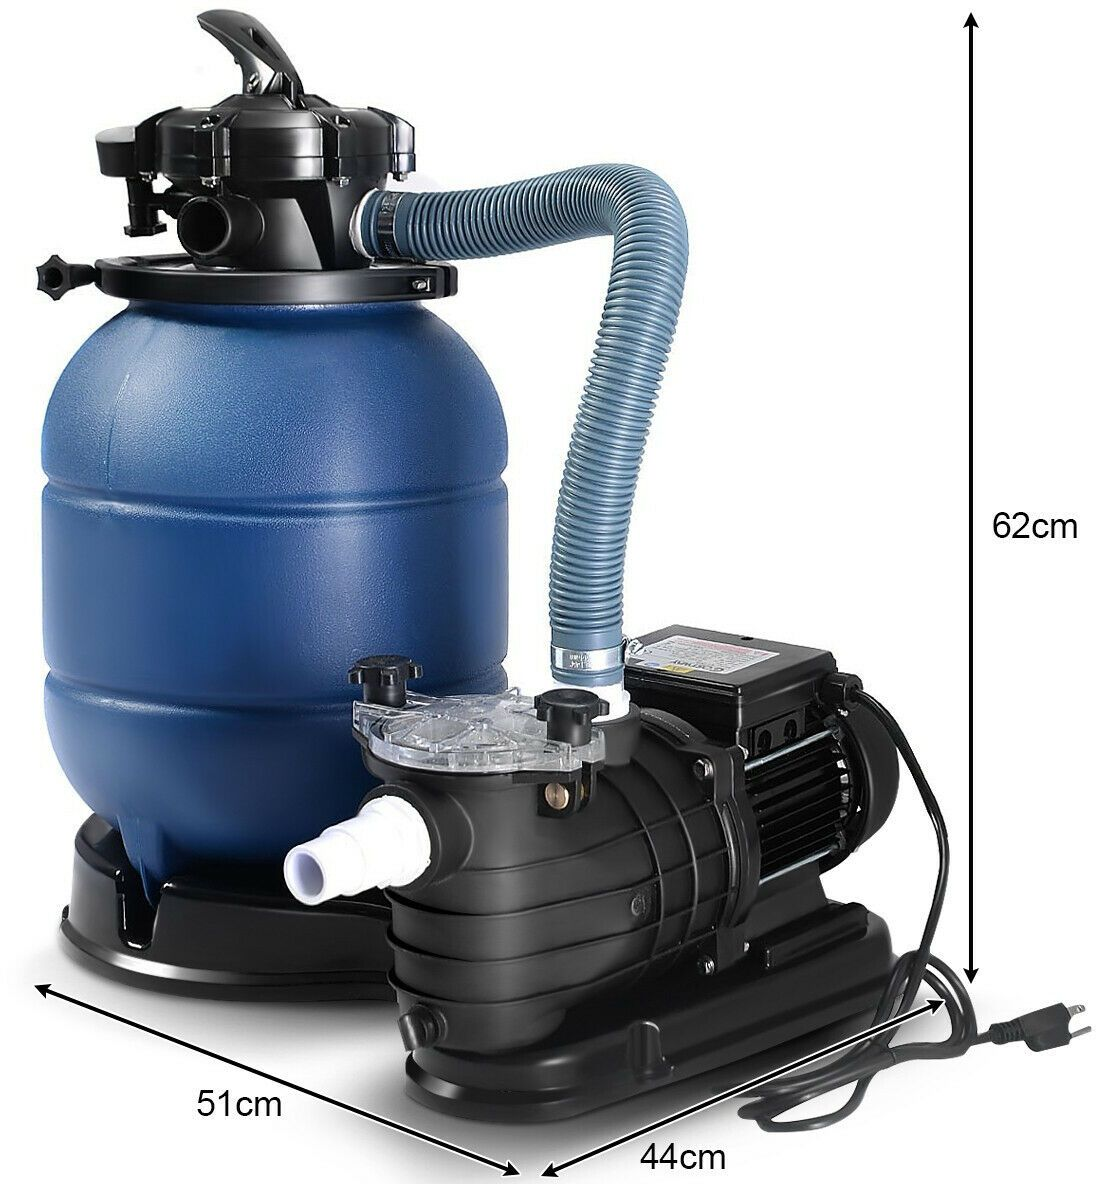 Pro 2450gph 13 Sand Filter Above Ground 10000gal Swimming Pool Pump 6940350803309 Ebay Pool Sand Pool Pump Above Ground Pool Pumps